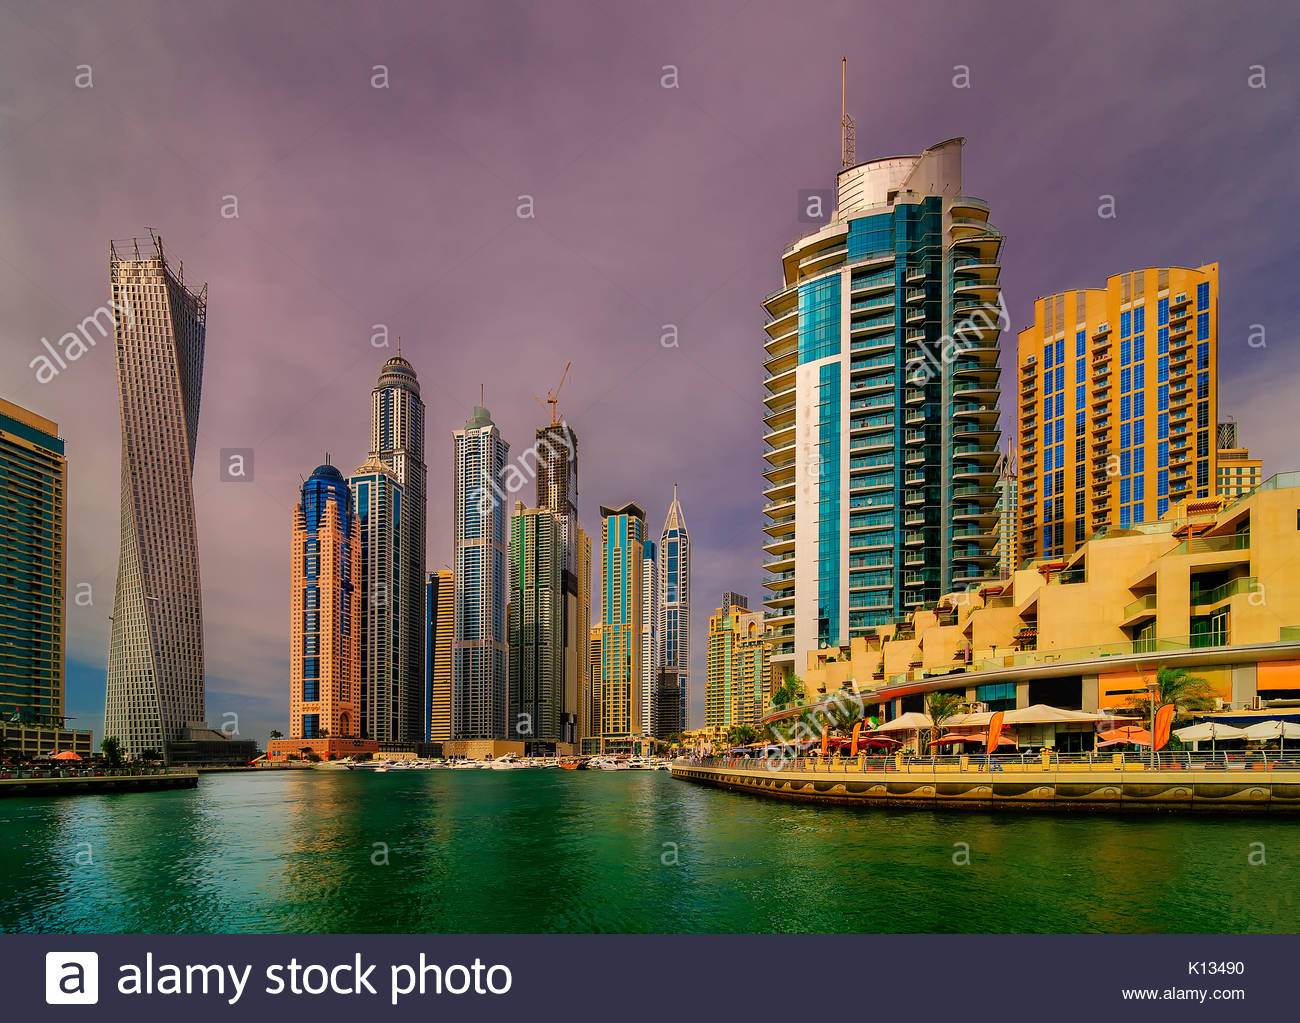 Amazing colorful dubai marina skyline, Dubai, United Arab Emirates. - Stock Image